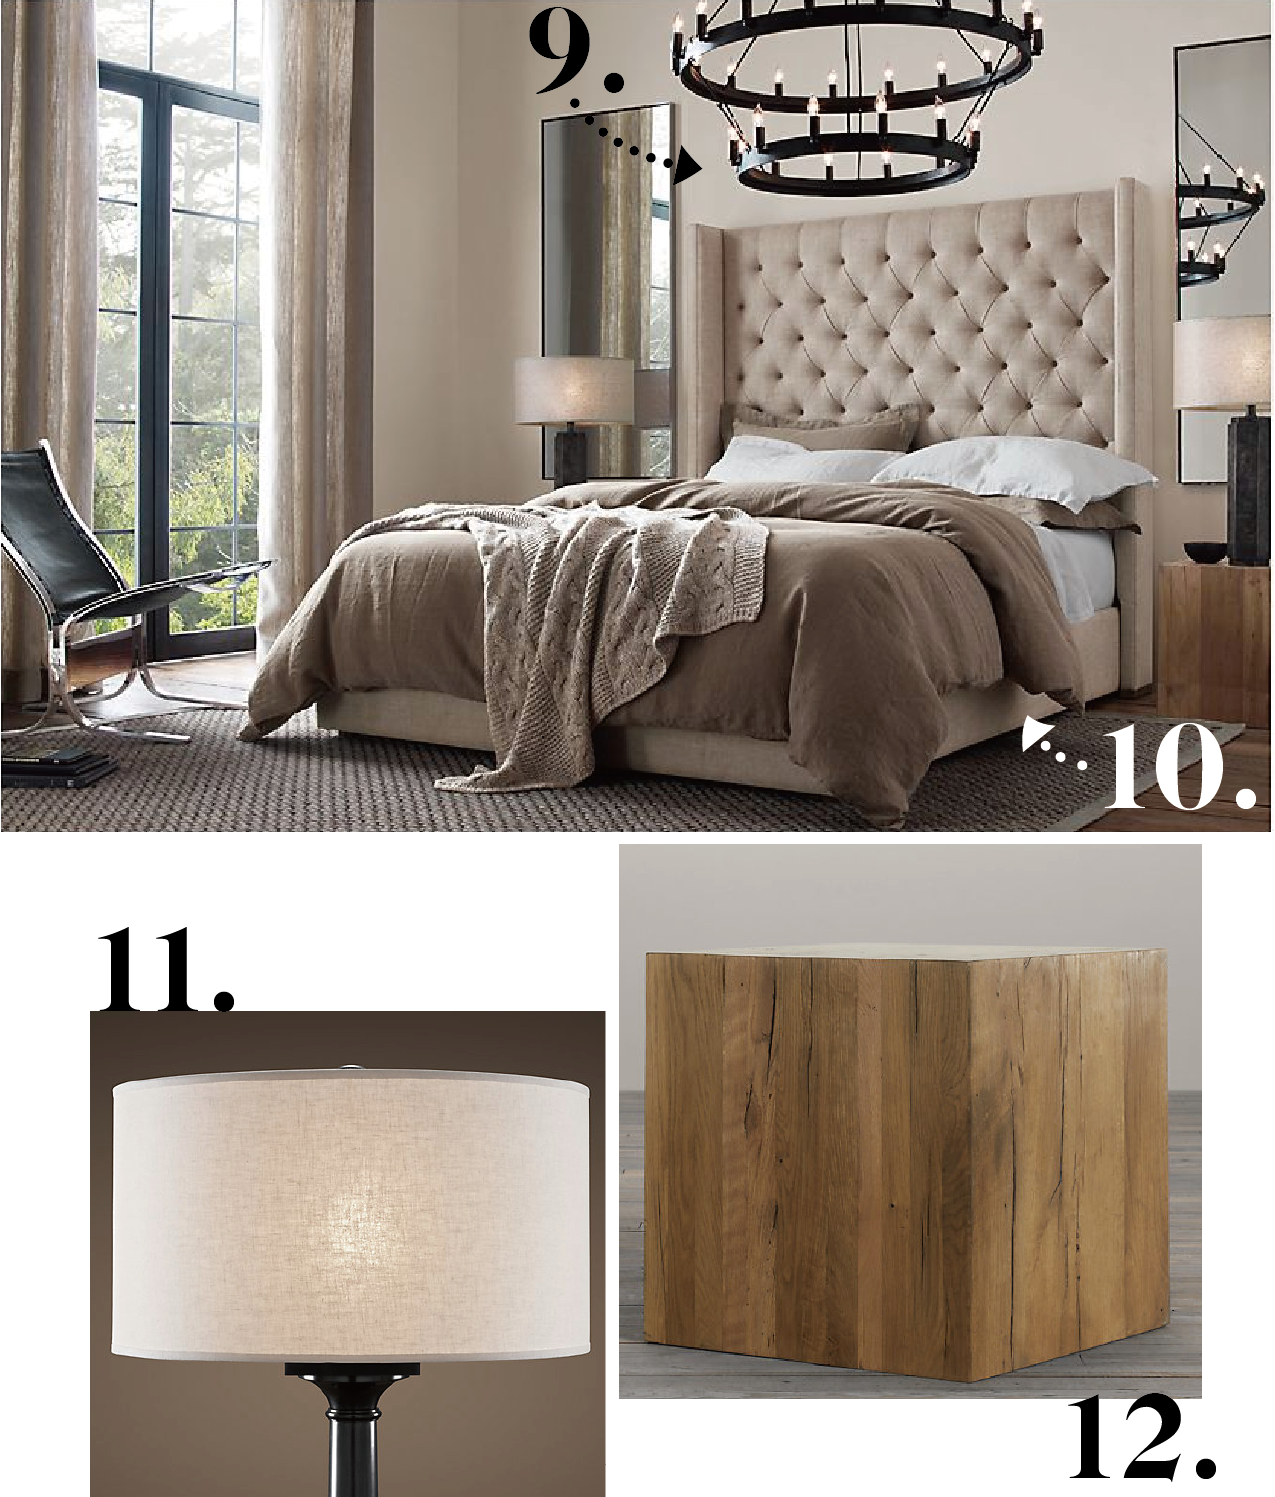 Restoration Hardware Catalogue - Bedroom | Interiors Blog